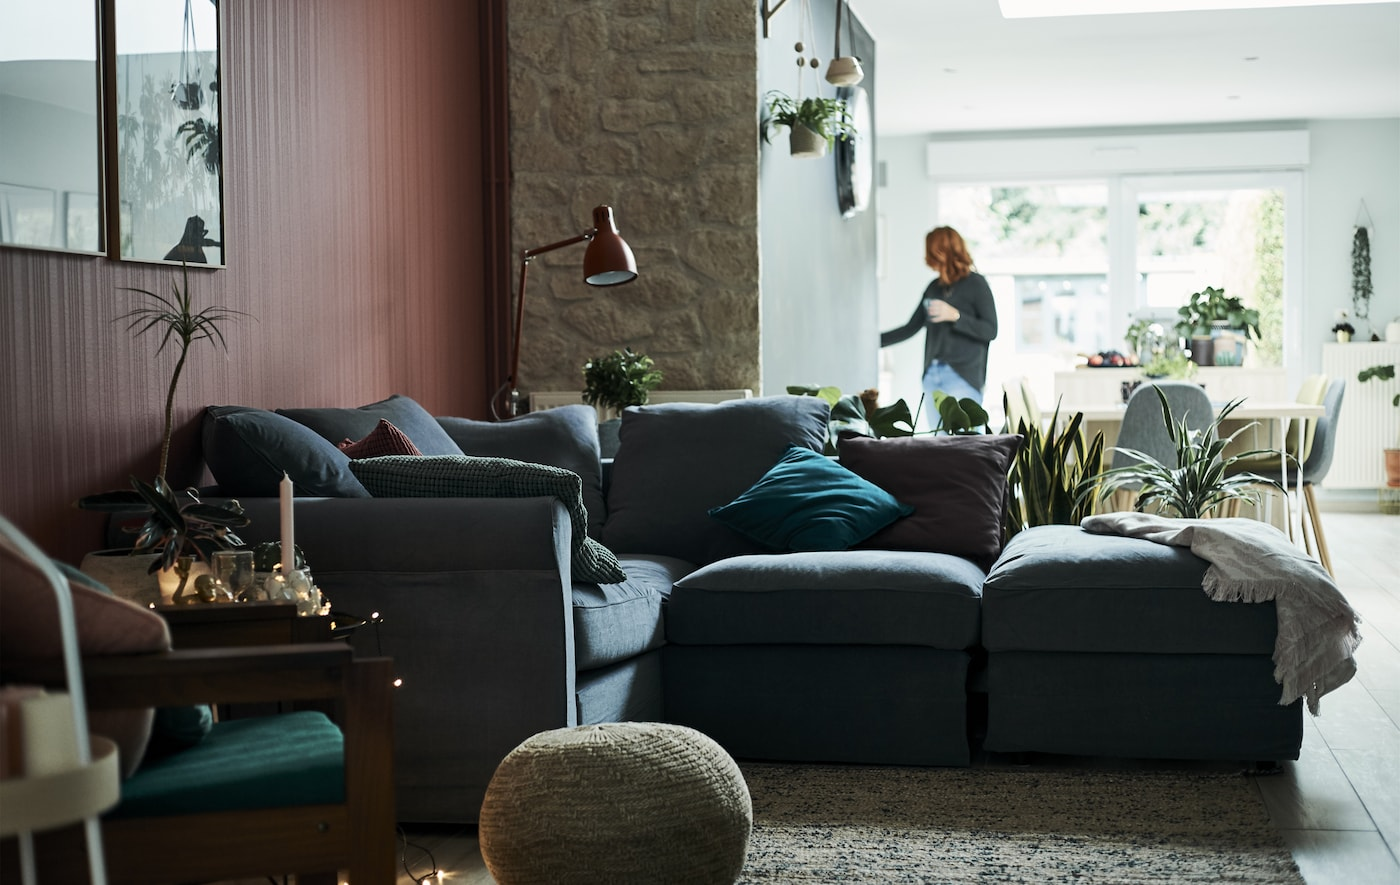 A living room with L-shaped grey sofa and red wall, with a dining area in the background.